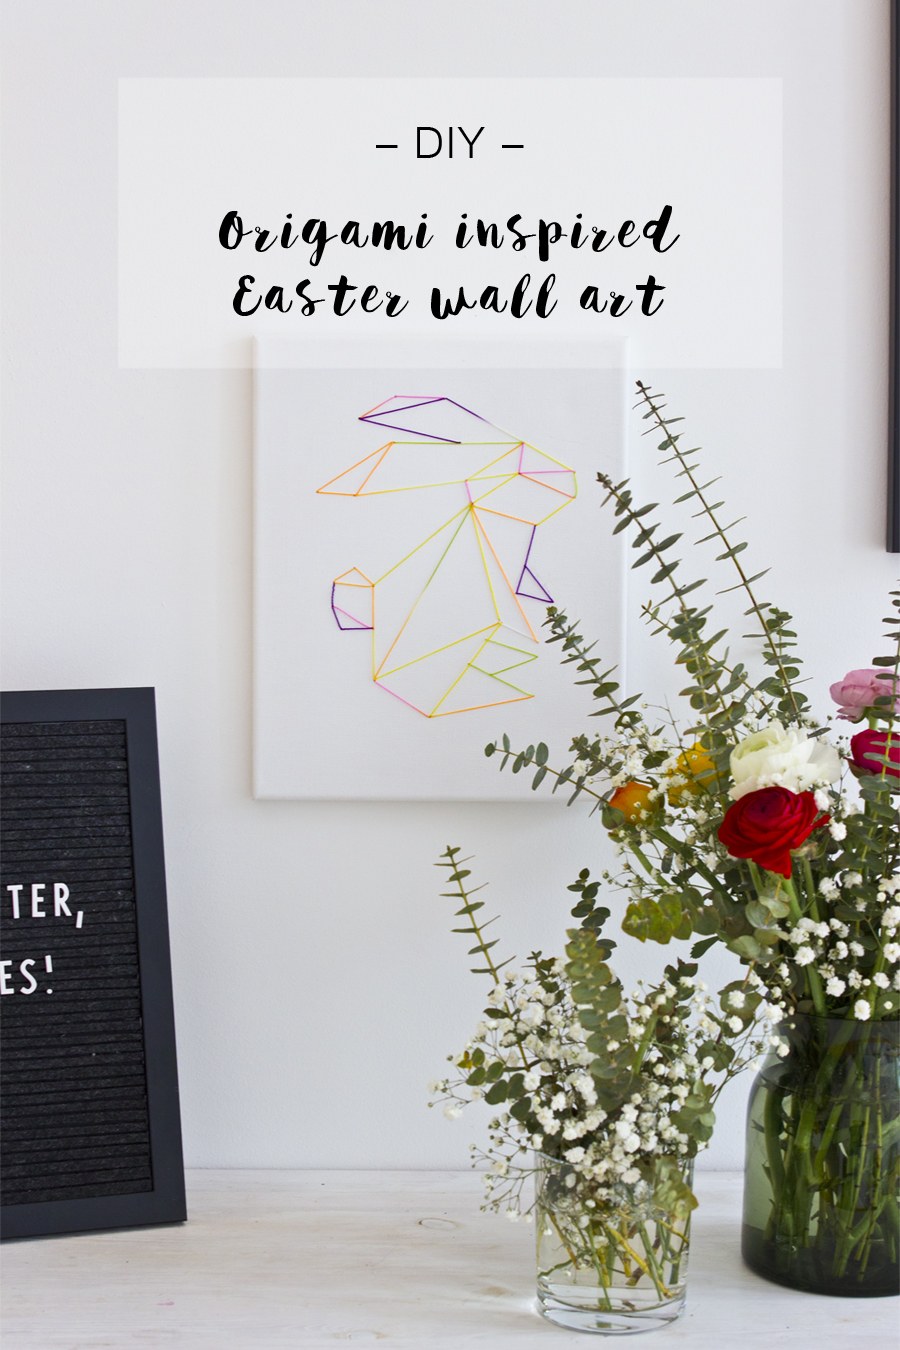 DIY Easter bunny wall art | LOOK WHAT I MADE ...